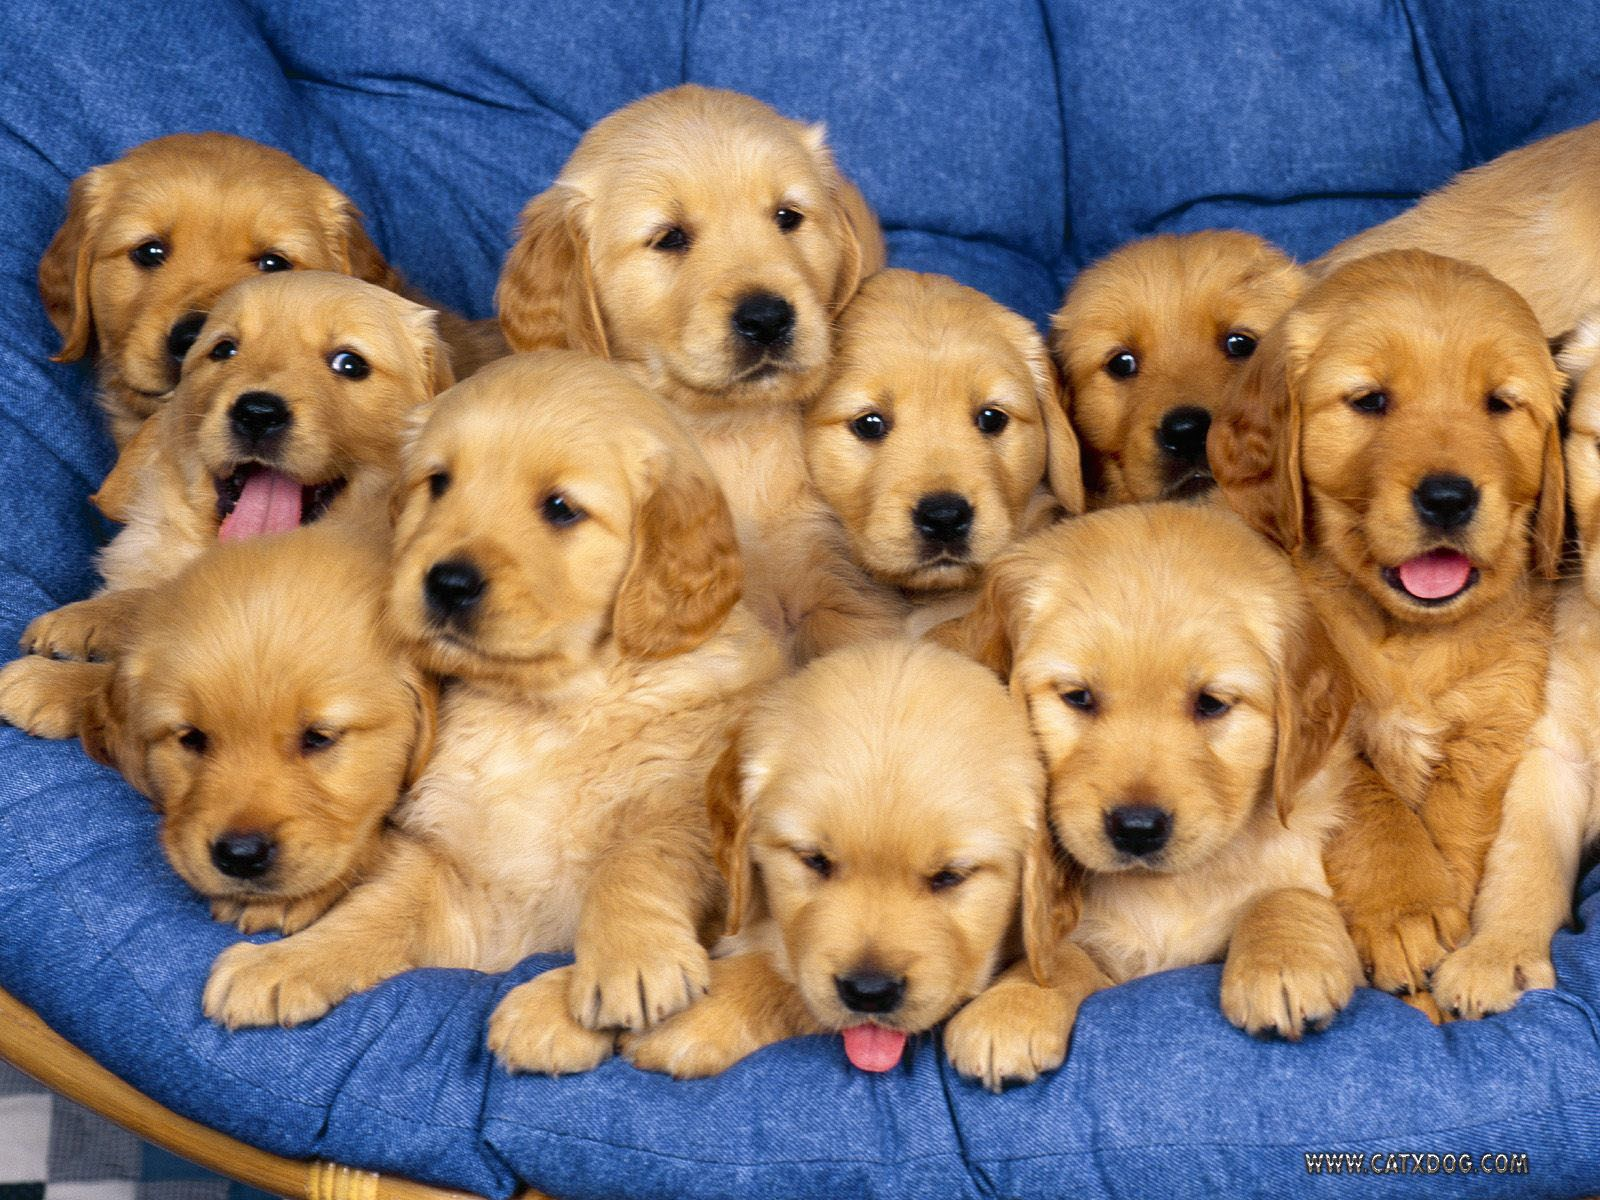 The Pile Of Puppies Retriever Puppy Dogs Golden Retriever Pets